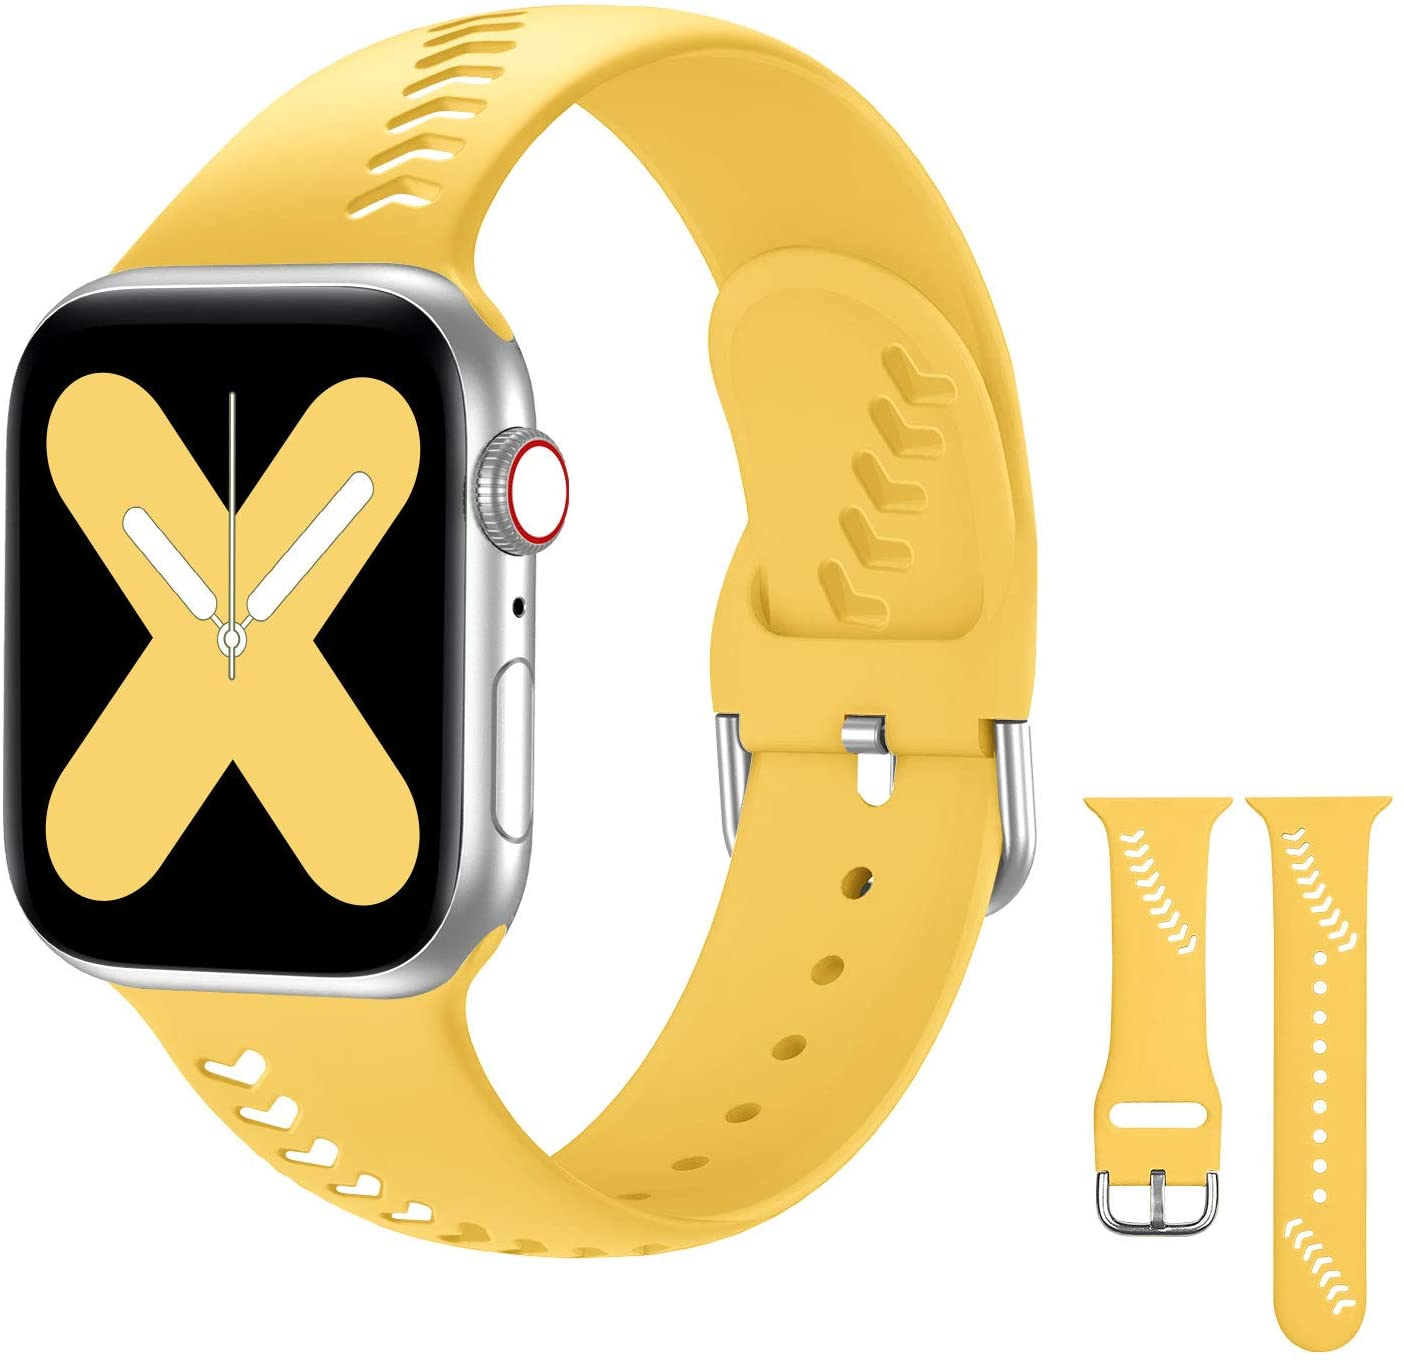 Doasuwish Compatible with Apple Watch Band 38mm 40mm, Baseball Pattern Sport Silicone Band Hollowed-Out Thin Wristband Watch Strap Compatible for Apple Watch Series 6/5/4/3/2/1, Yellow